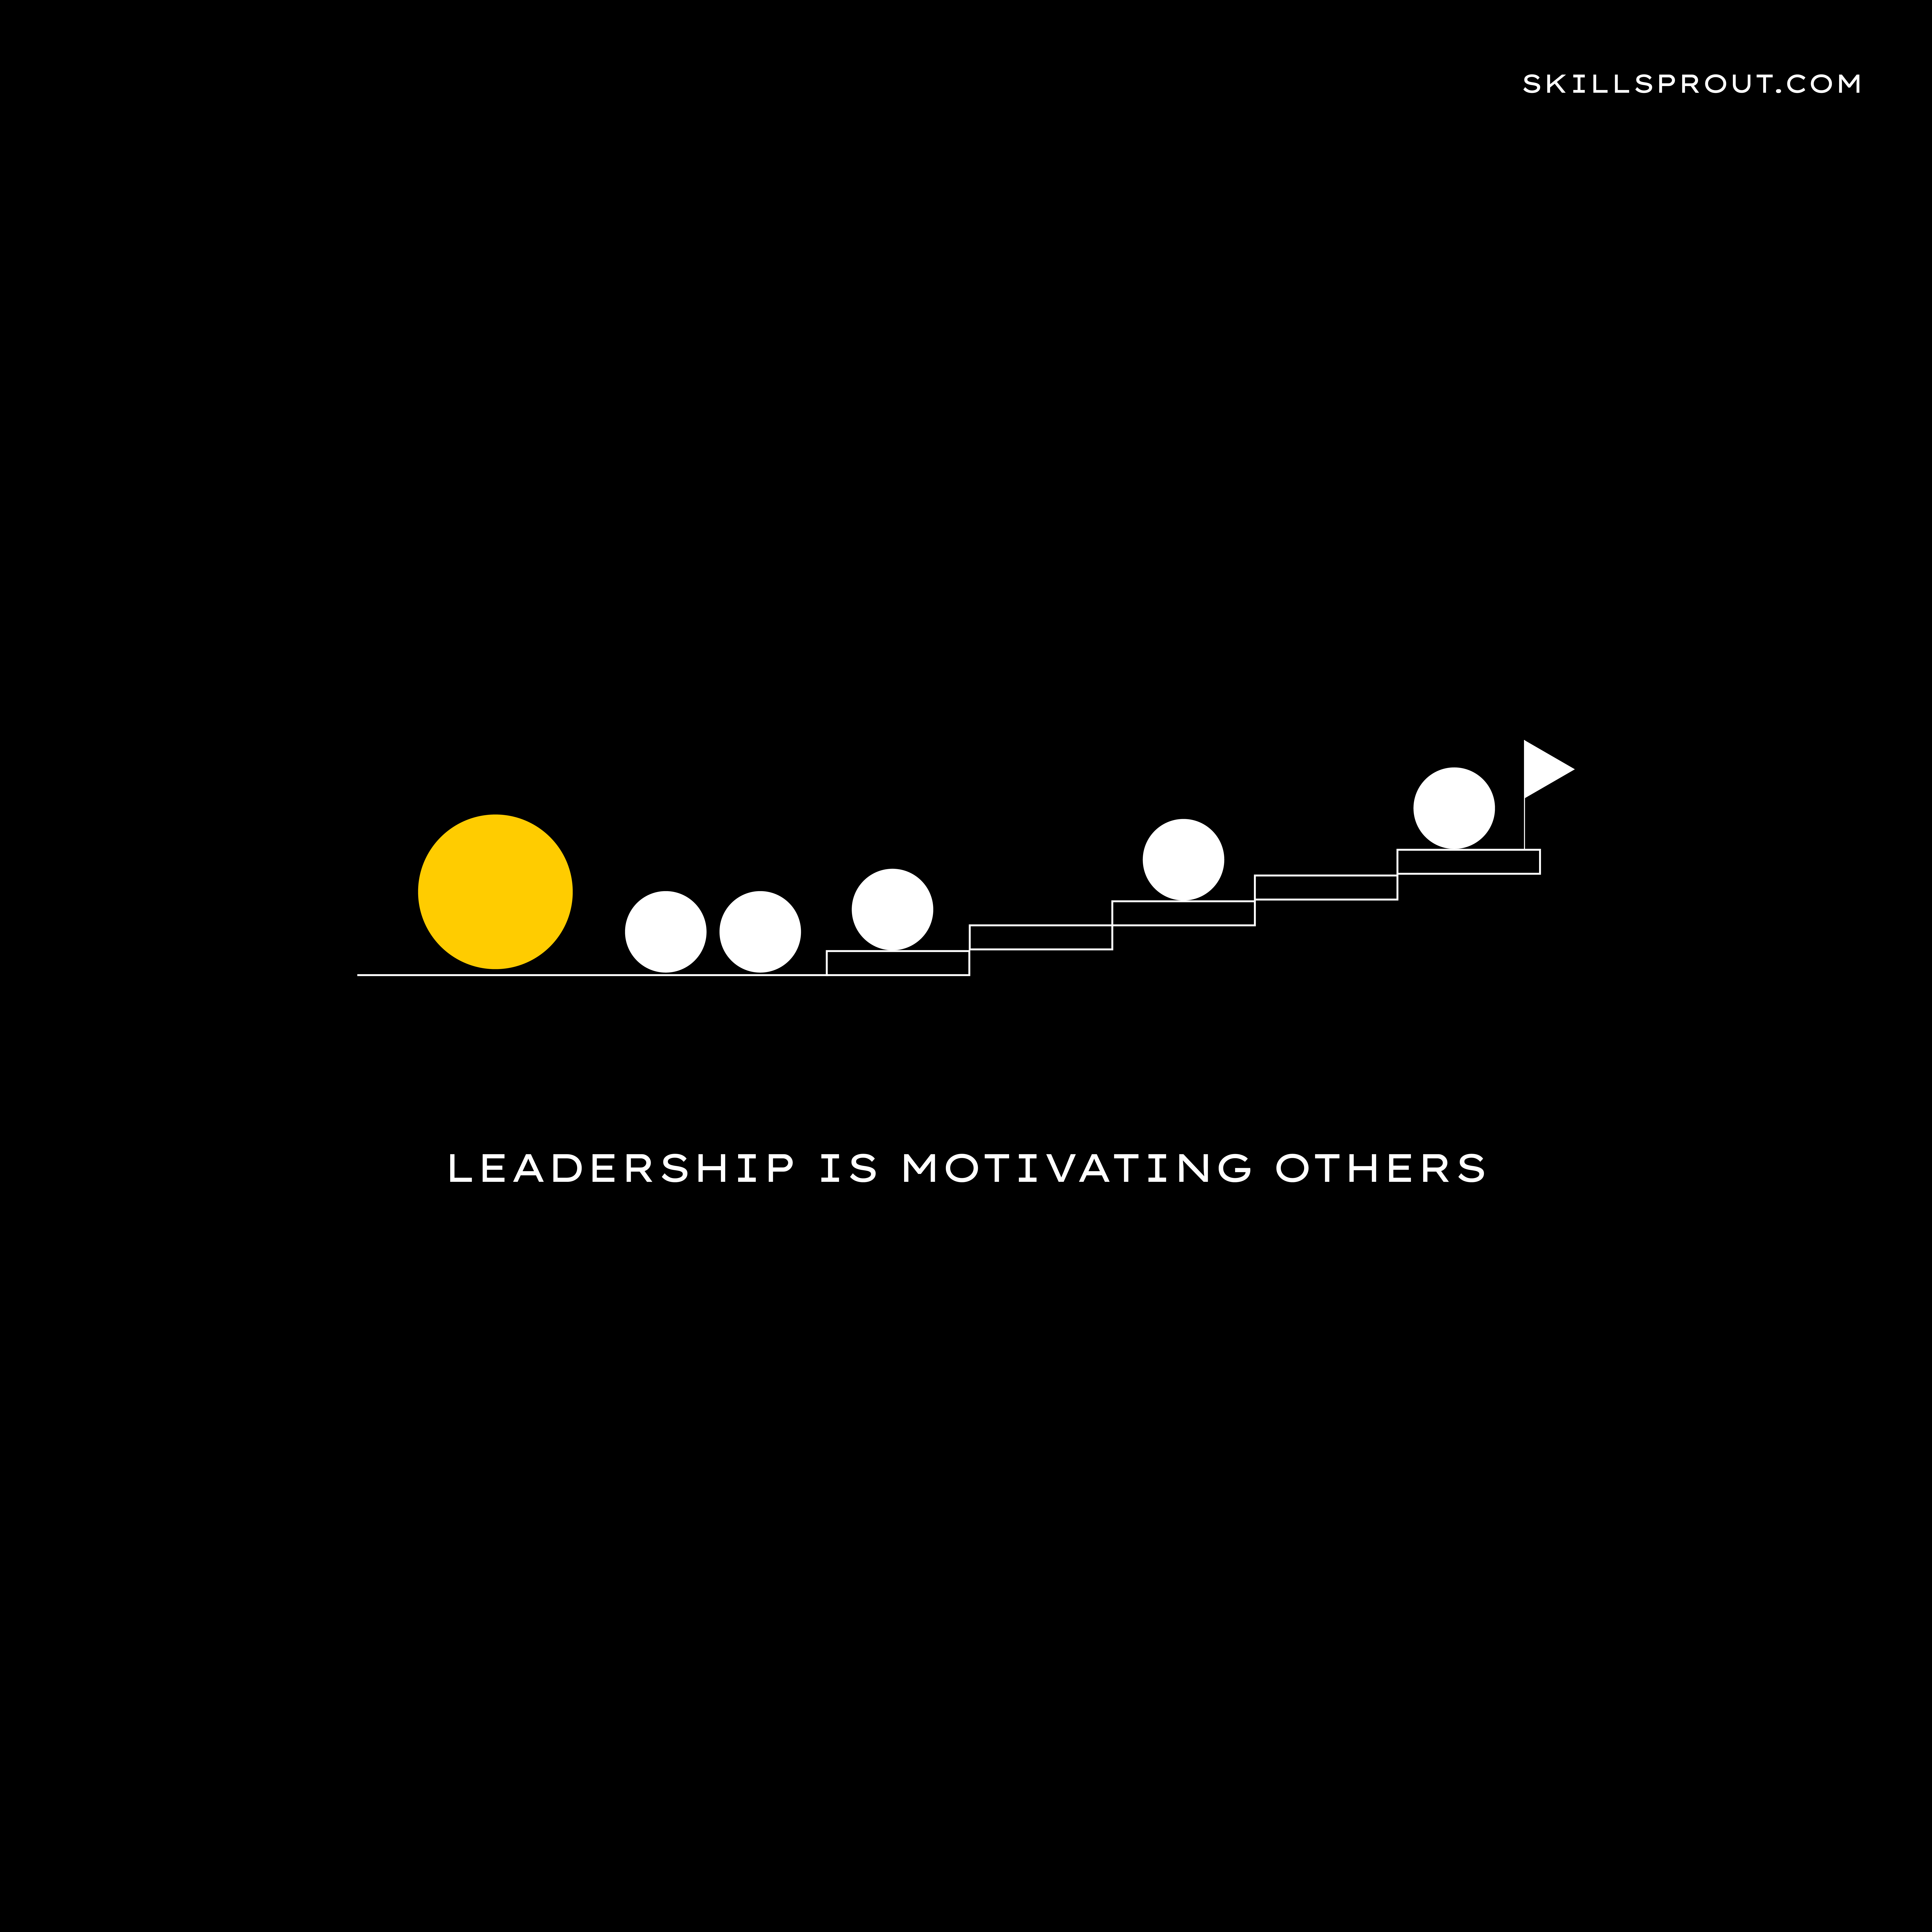 Leadership is motivating others.